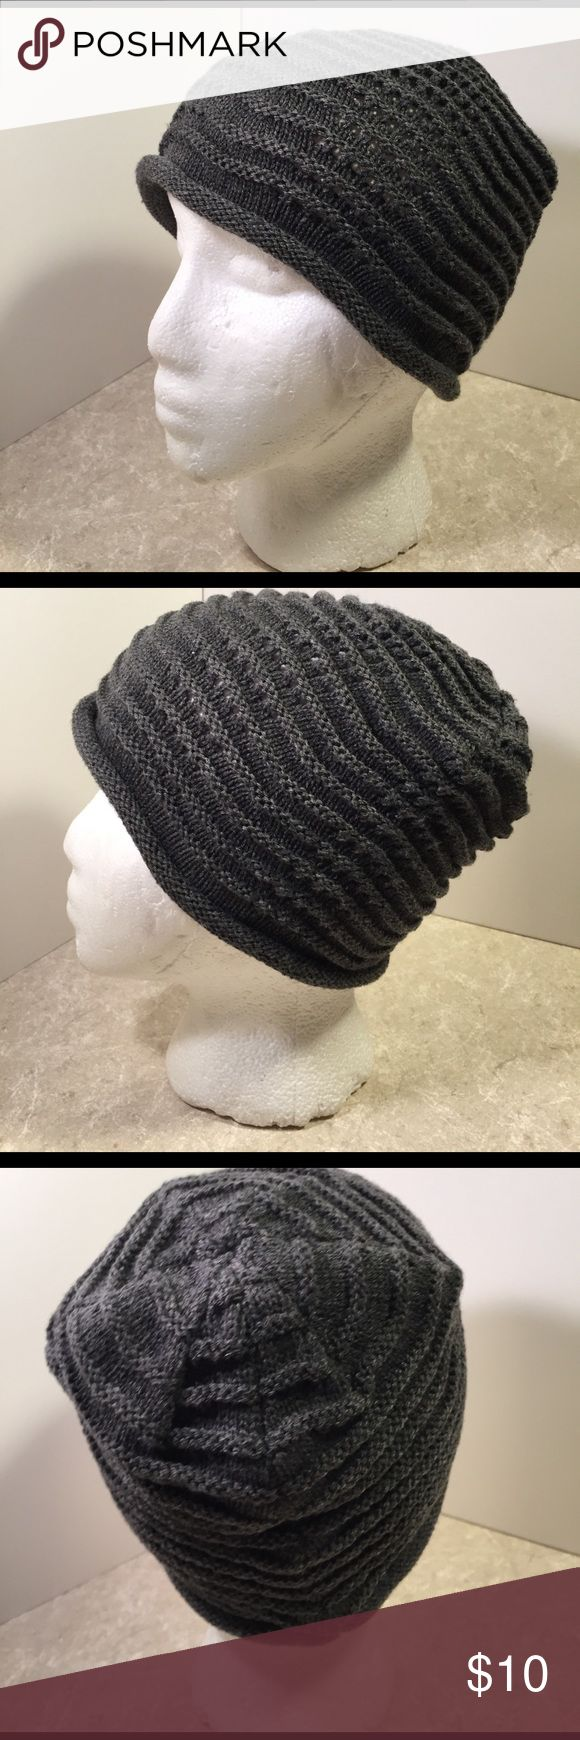 Scala Pronto Gray ribbed knit beanie This is a fun gray hat by Scala, ribbed and wave like texture. See pictures for details. Good condition minor wear. Be sure to check out other items in closet and bundle to receive discounts. Scala Accessories Hats